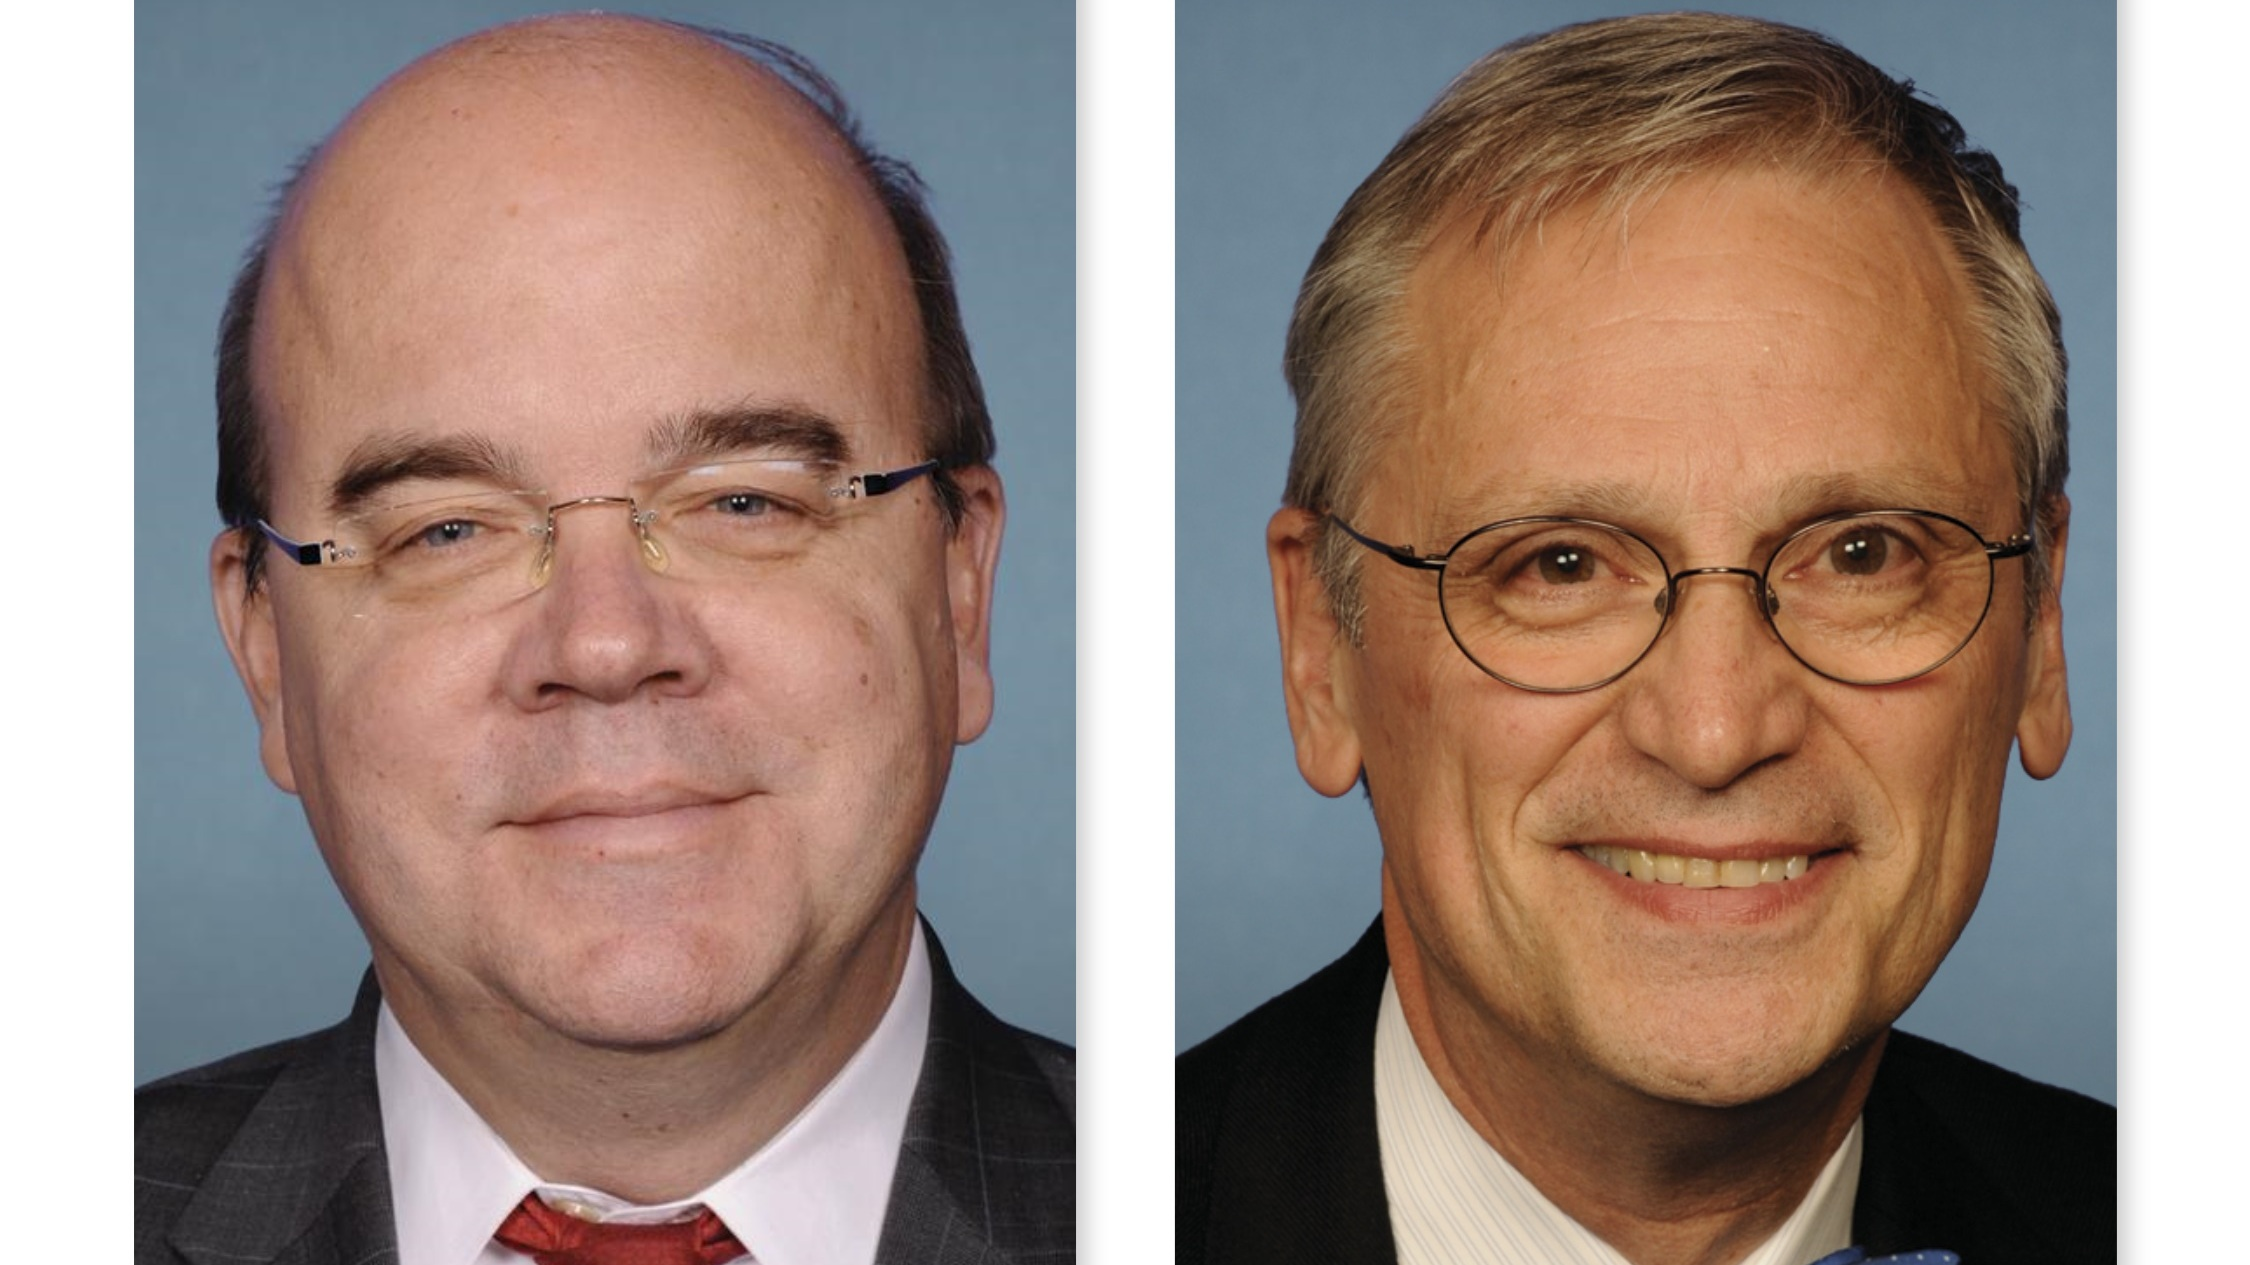 Reps Jim McGovern and Earl Blumenauer